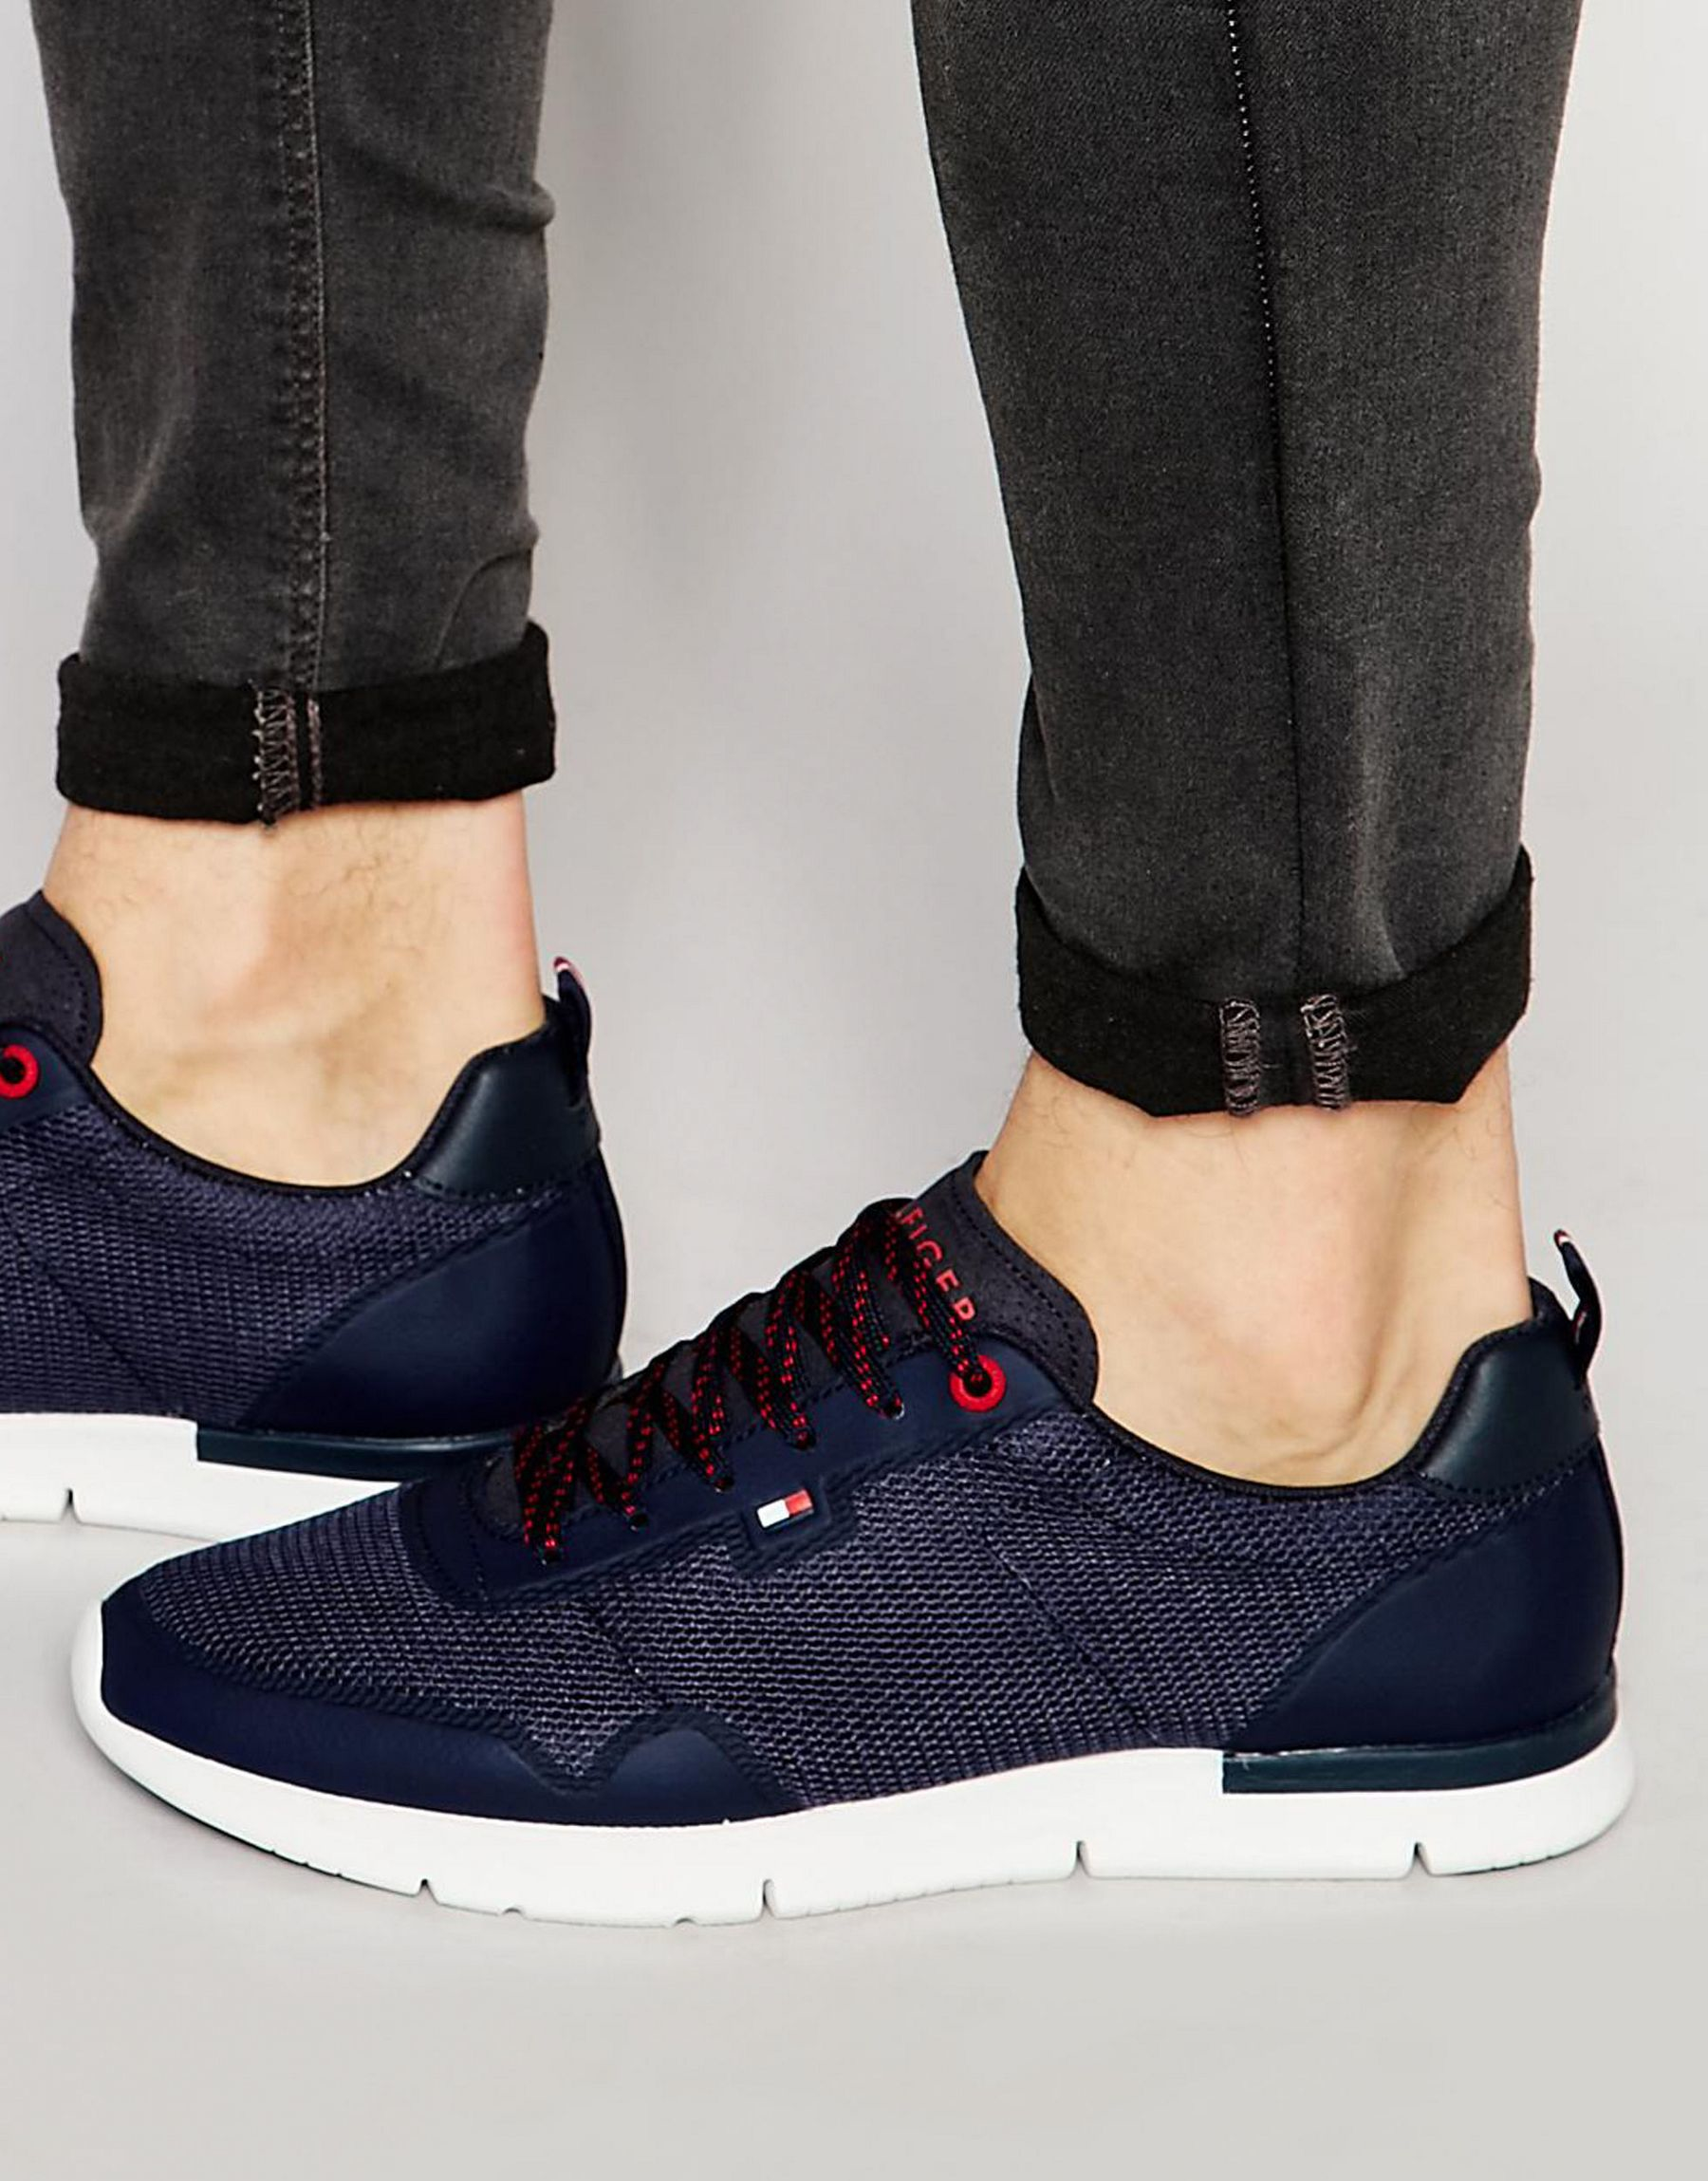 c024976e0 Tommy Hilfiger Tobias Runner Sneakers in Blue for Men - Lyst